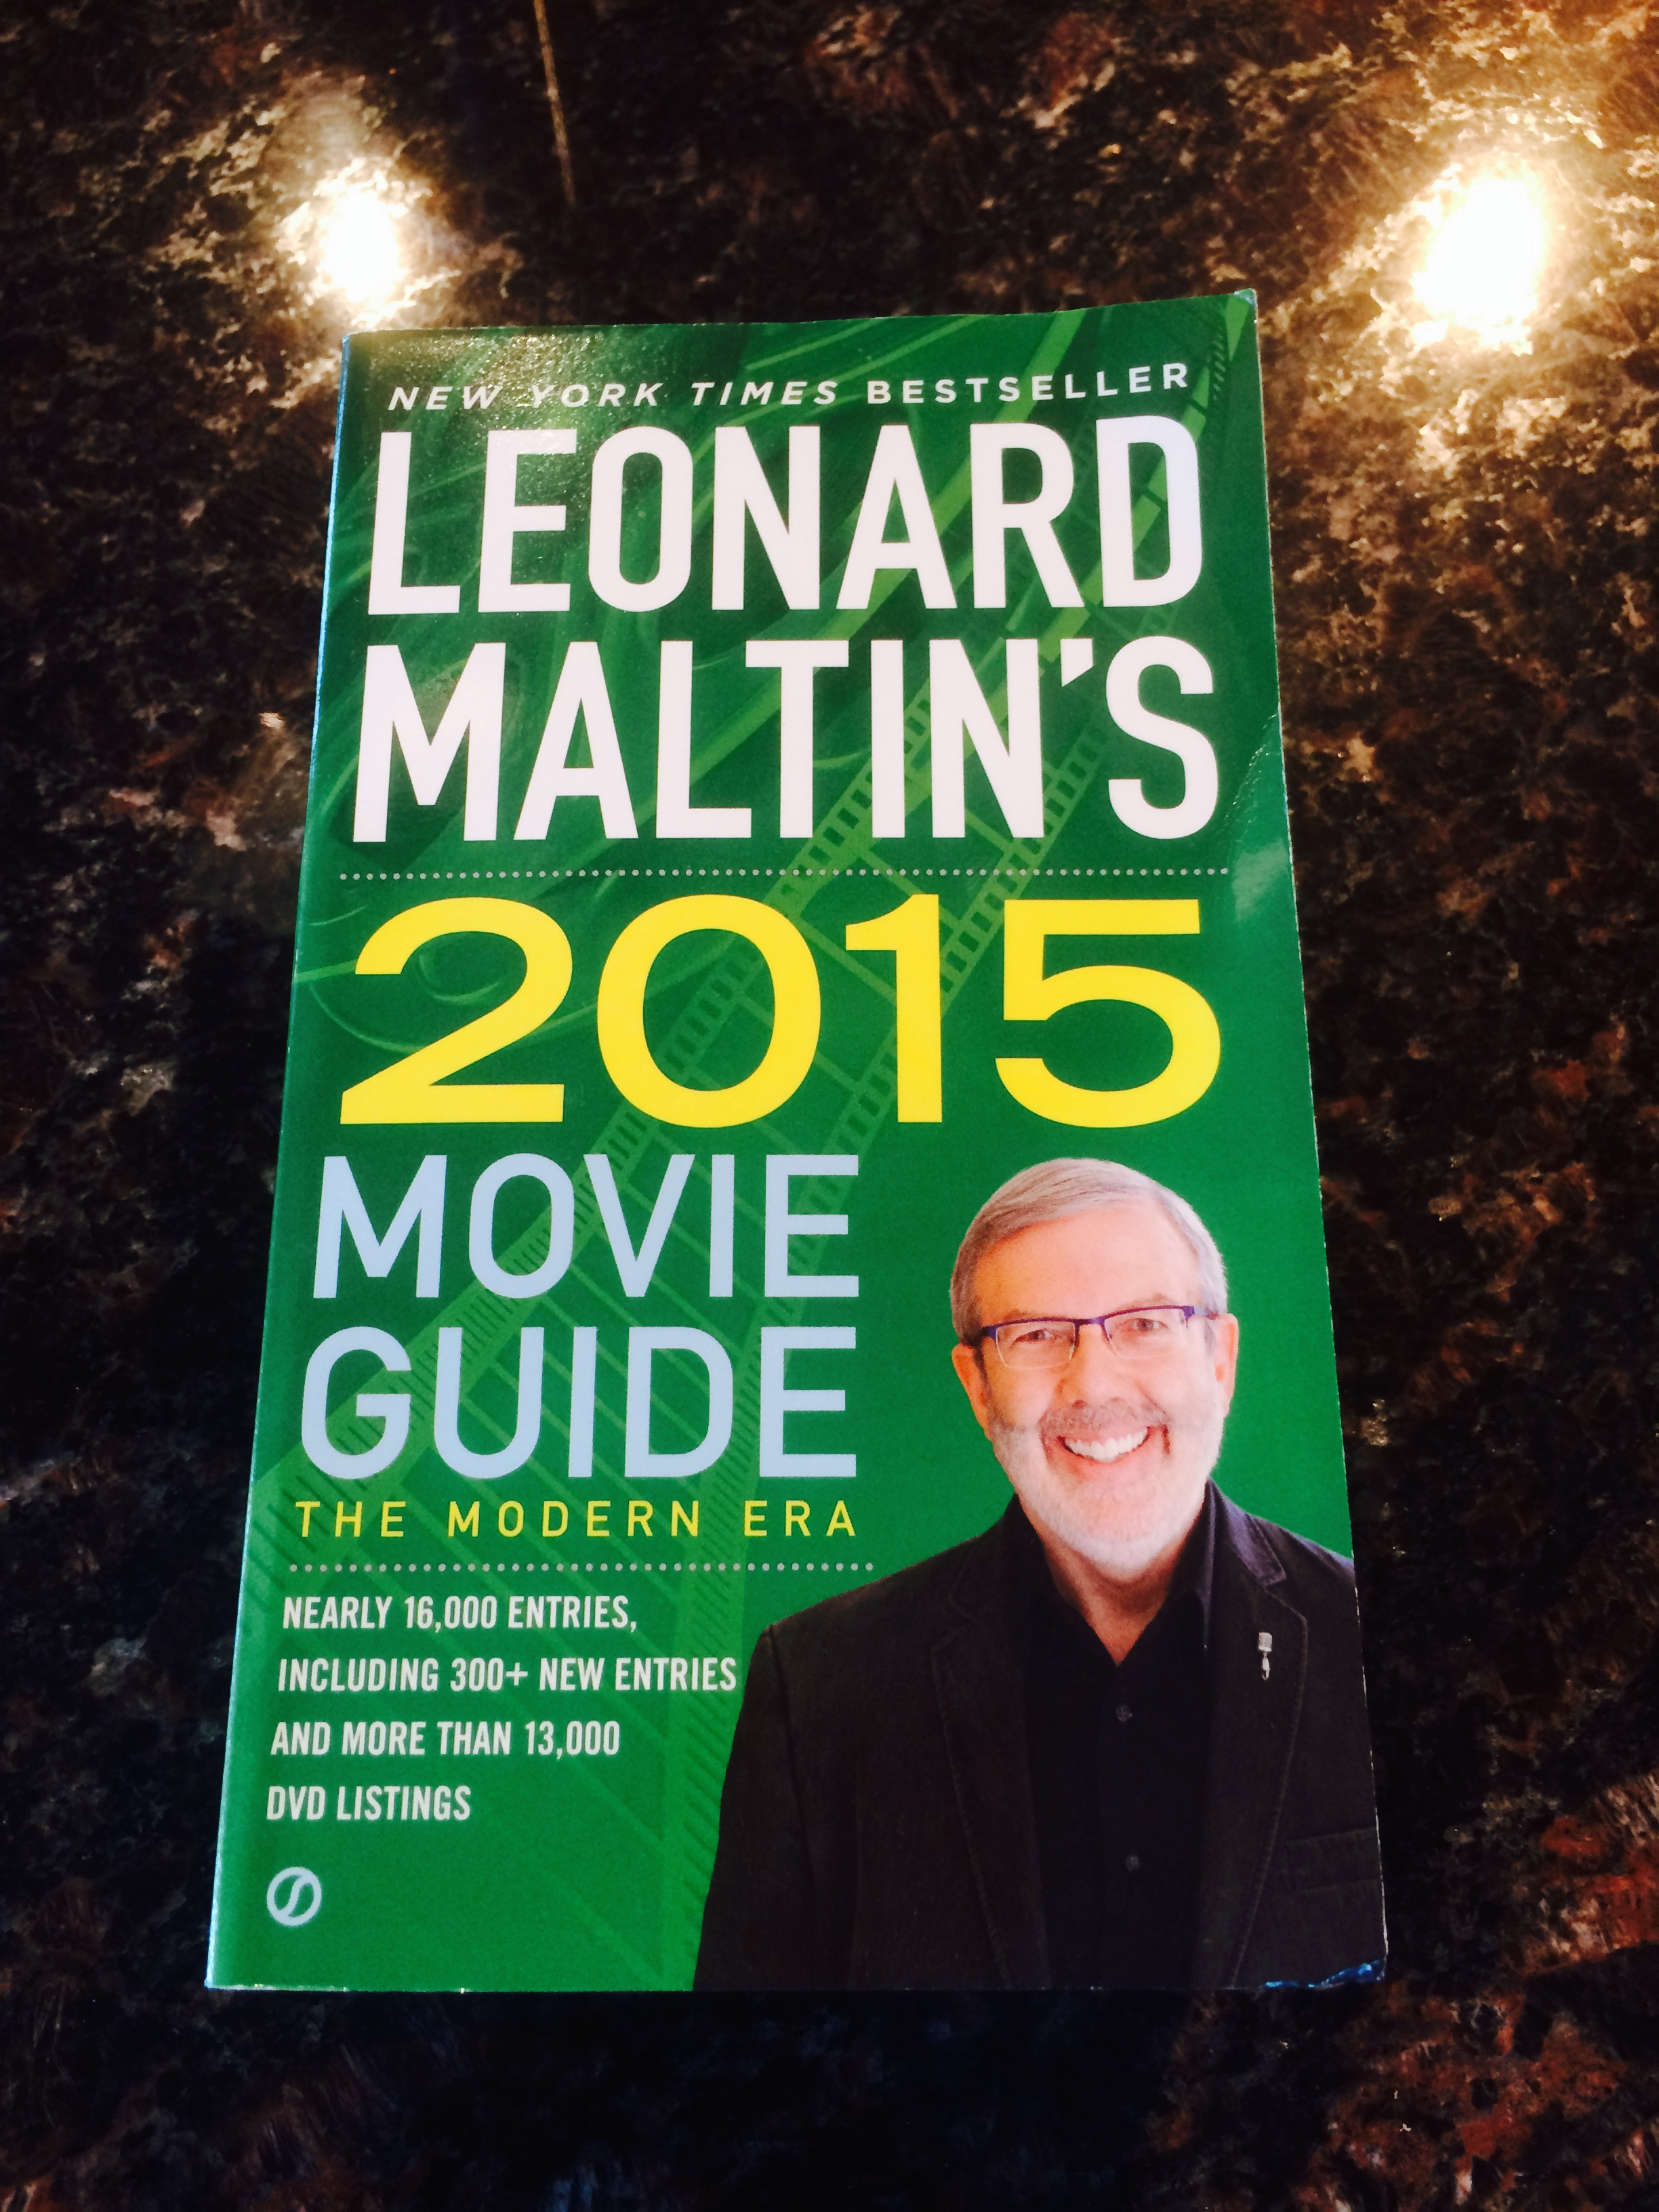 2014 Oscar Season Is Here Do Movie Reviews Matter Goodbye To